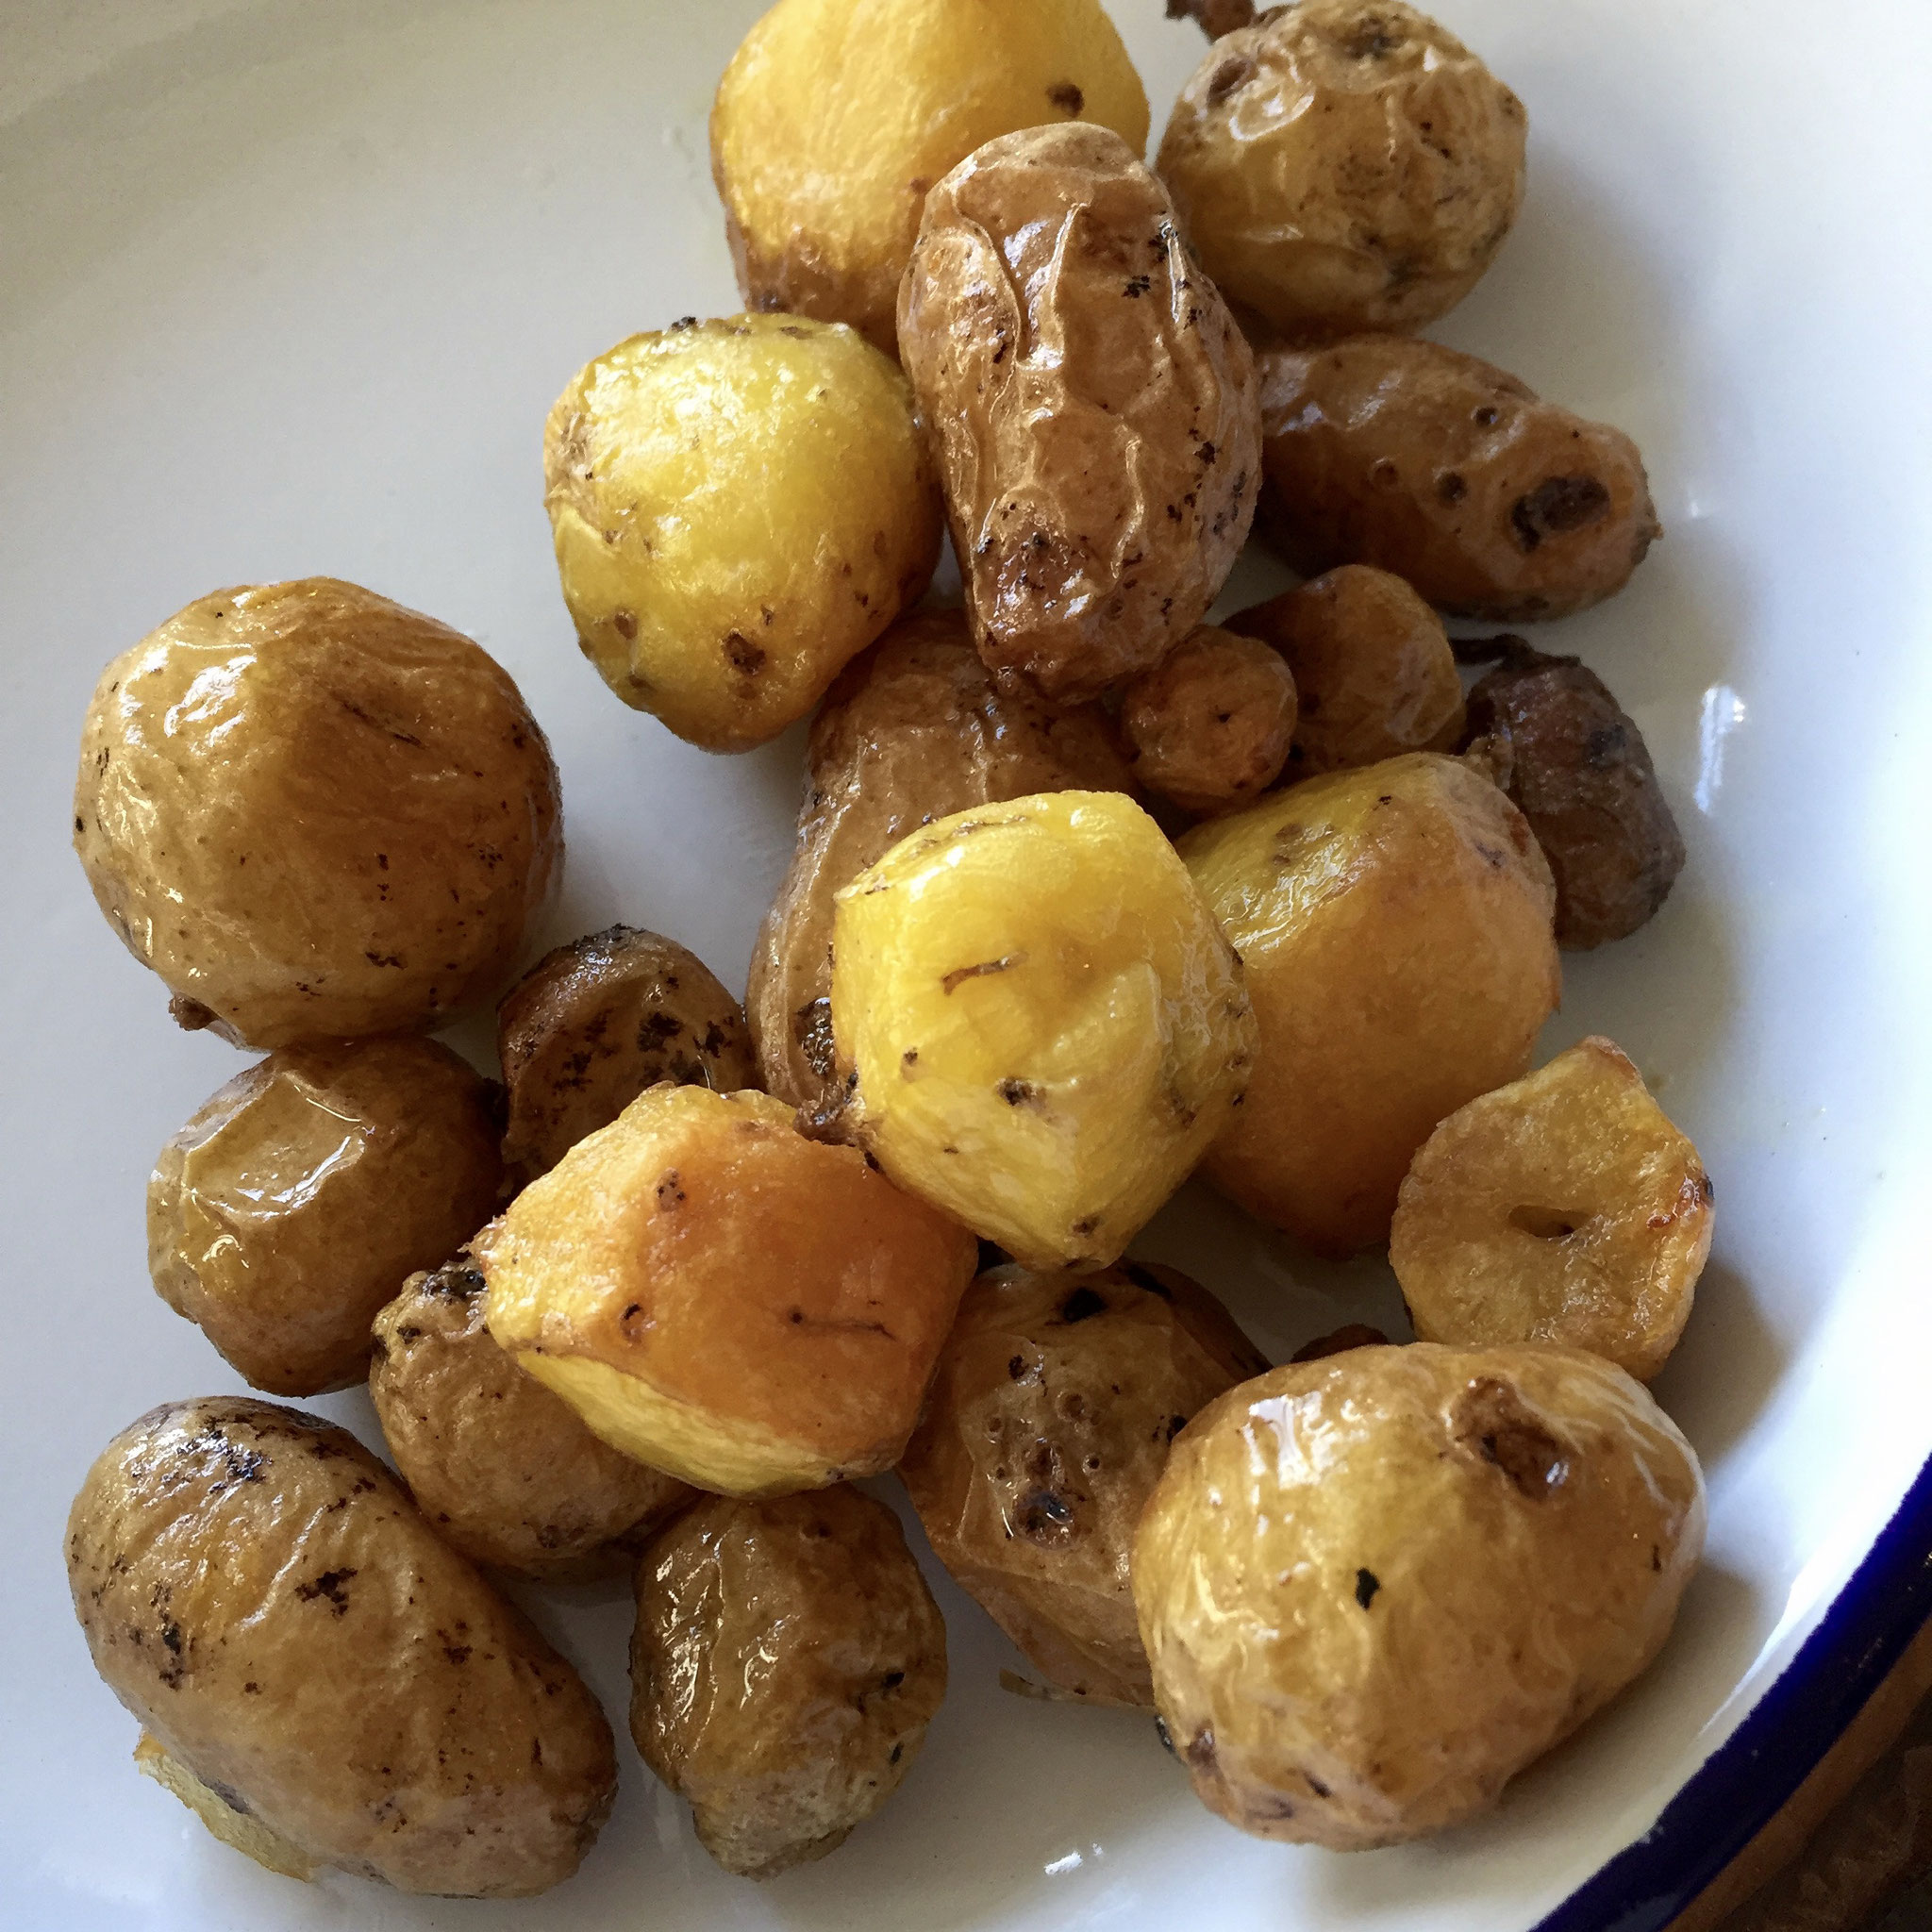 And here it is...the end result.  Balcony-grown roasted potatoes.  Can't get any better.